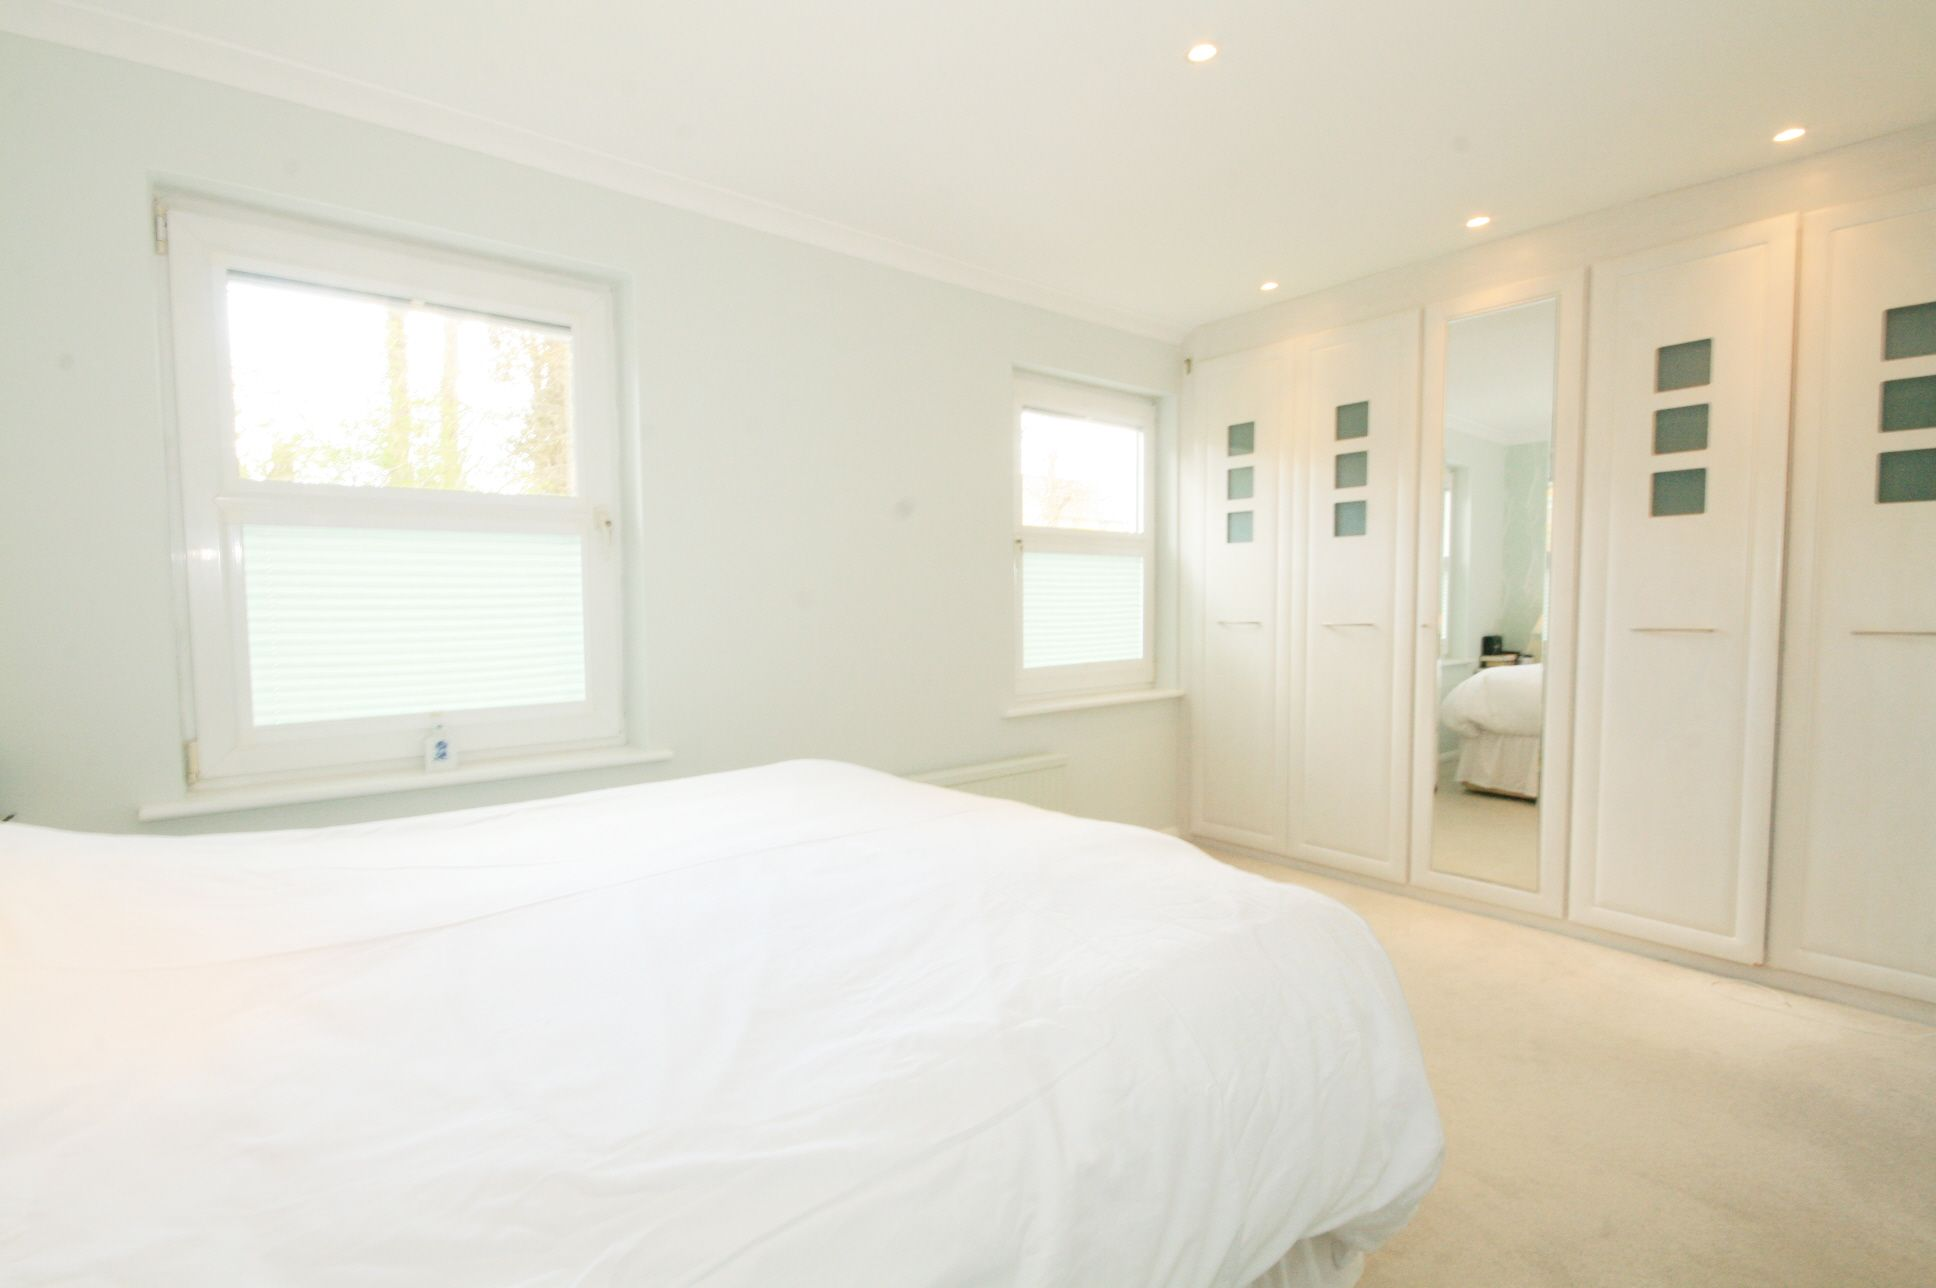 5 Bedroom Semi-detached House For Sale - Photograph 5